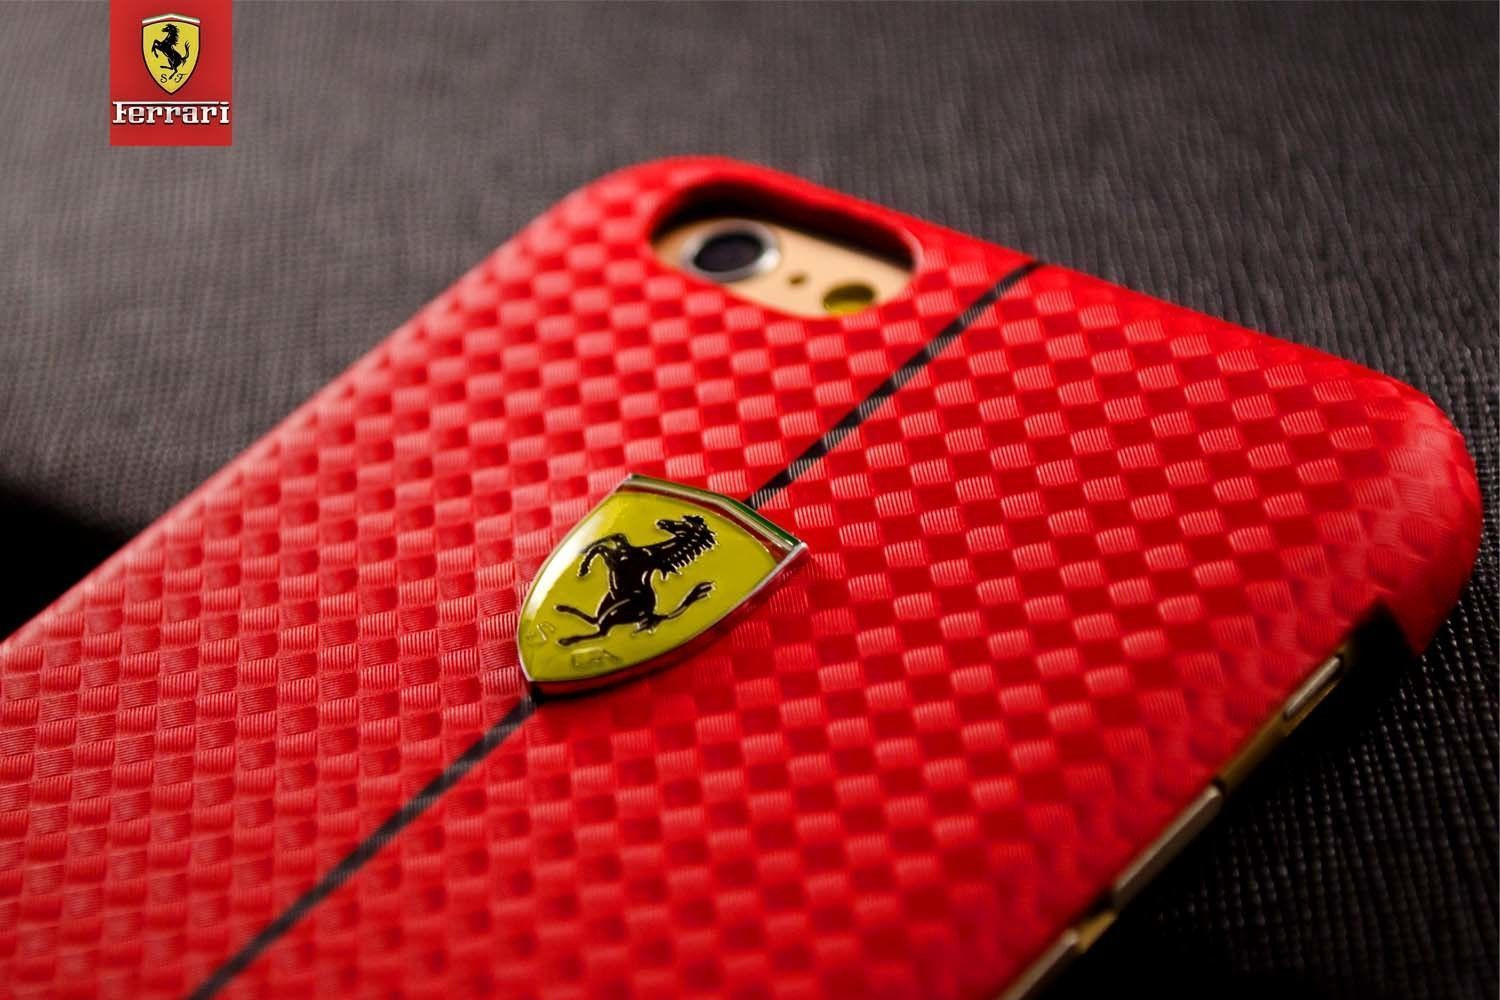 quality design 49588 efe4b Ferrari ® Apple iPhone 6 / 6S Official Hand Stitched Premium Leather Case  Back Cover